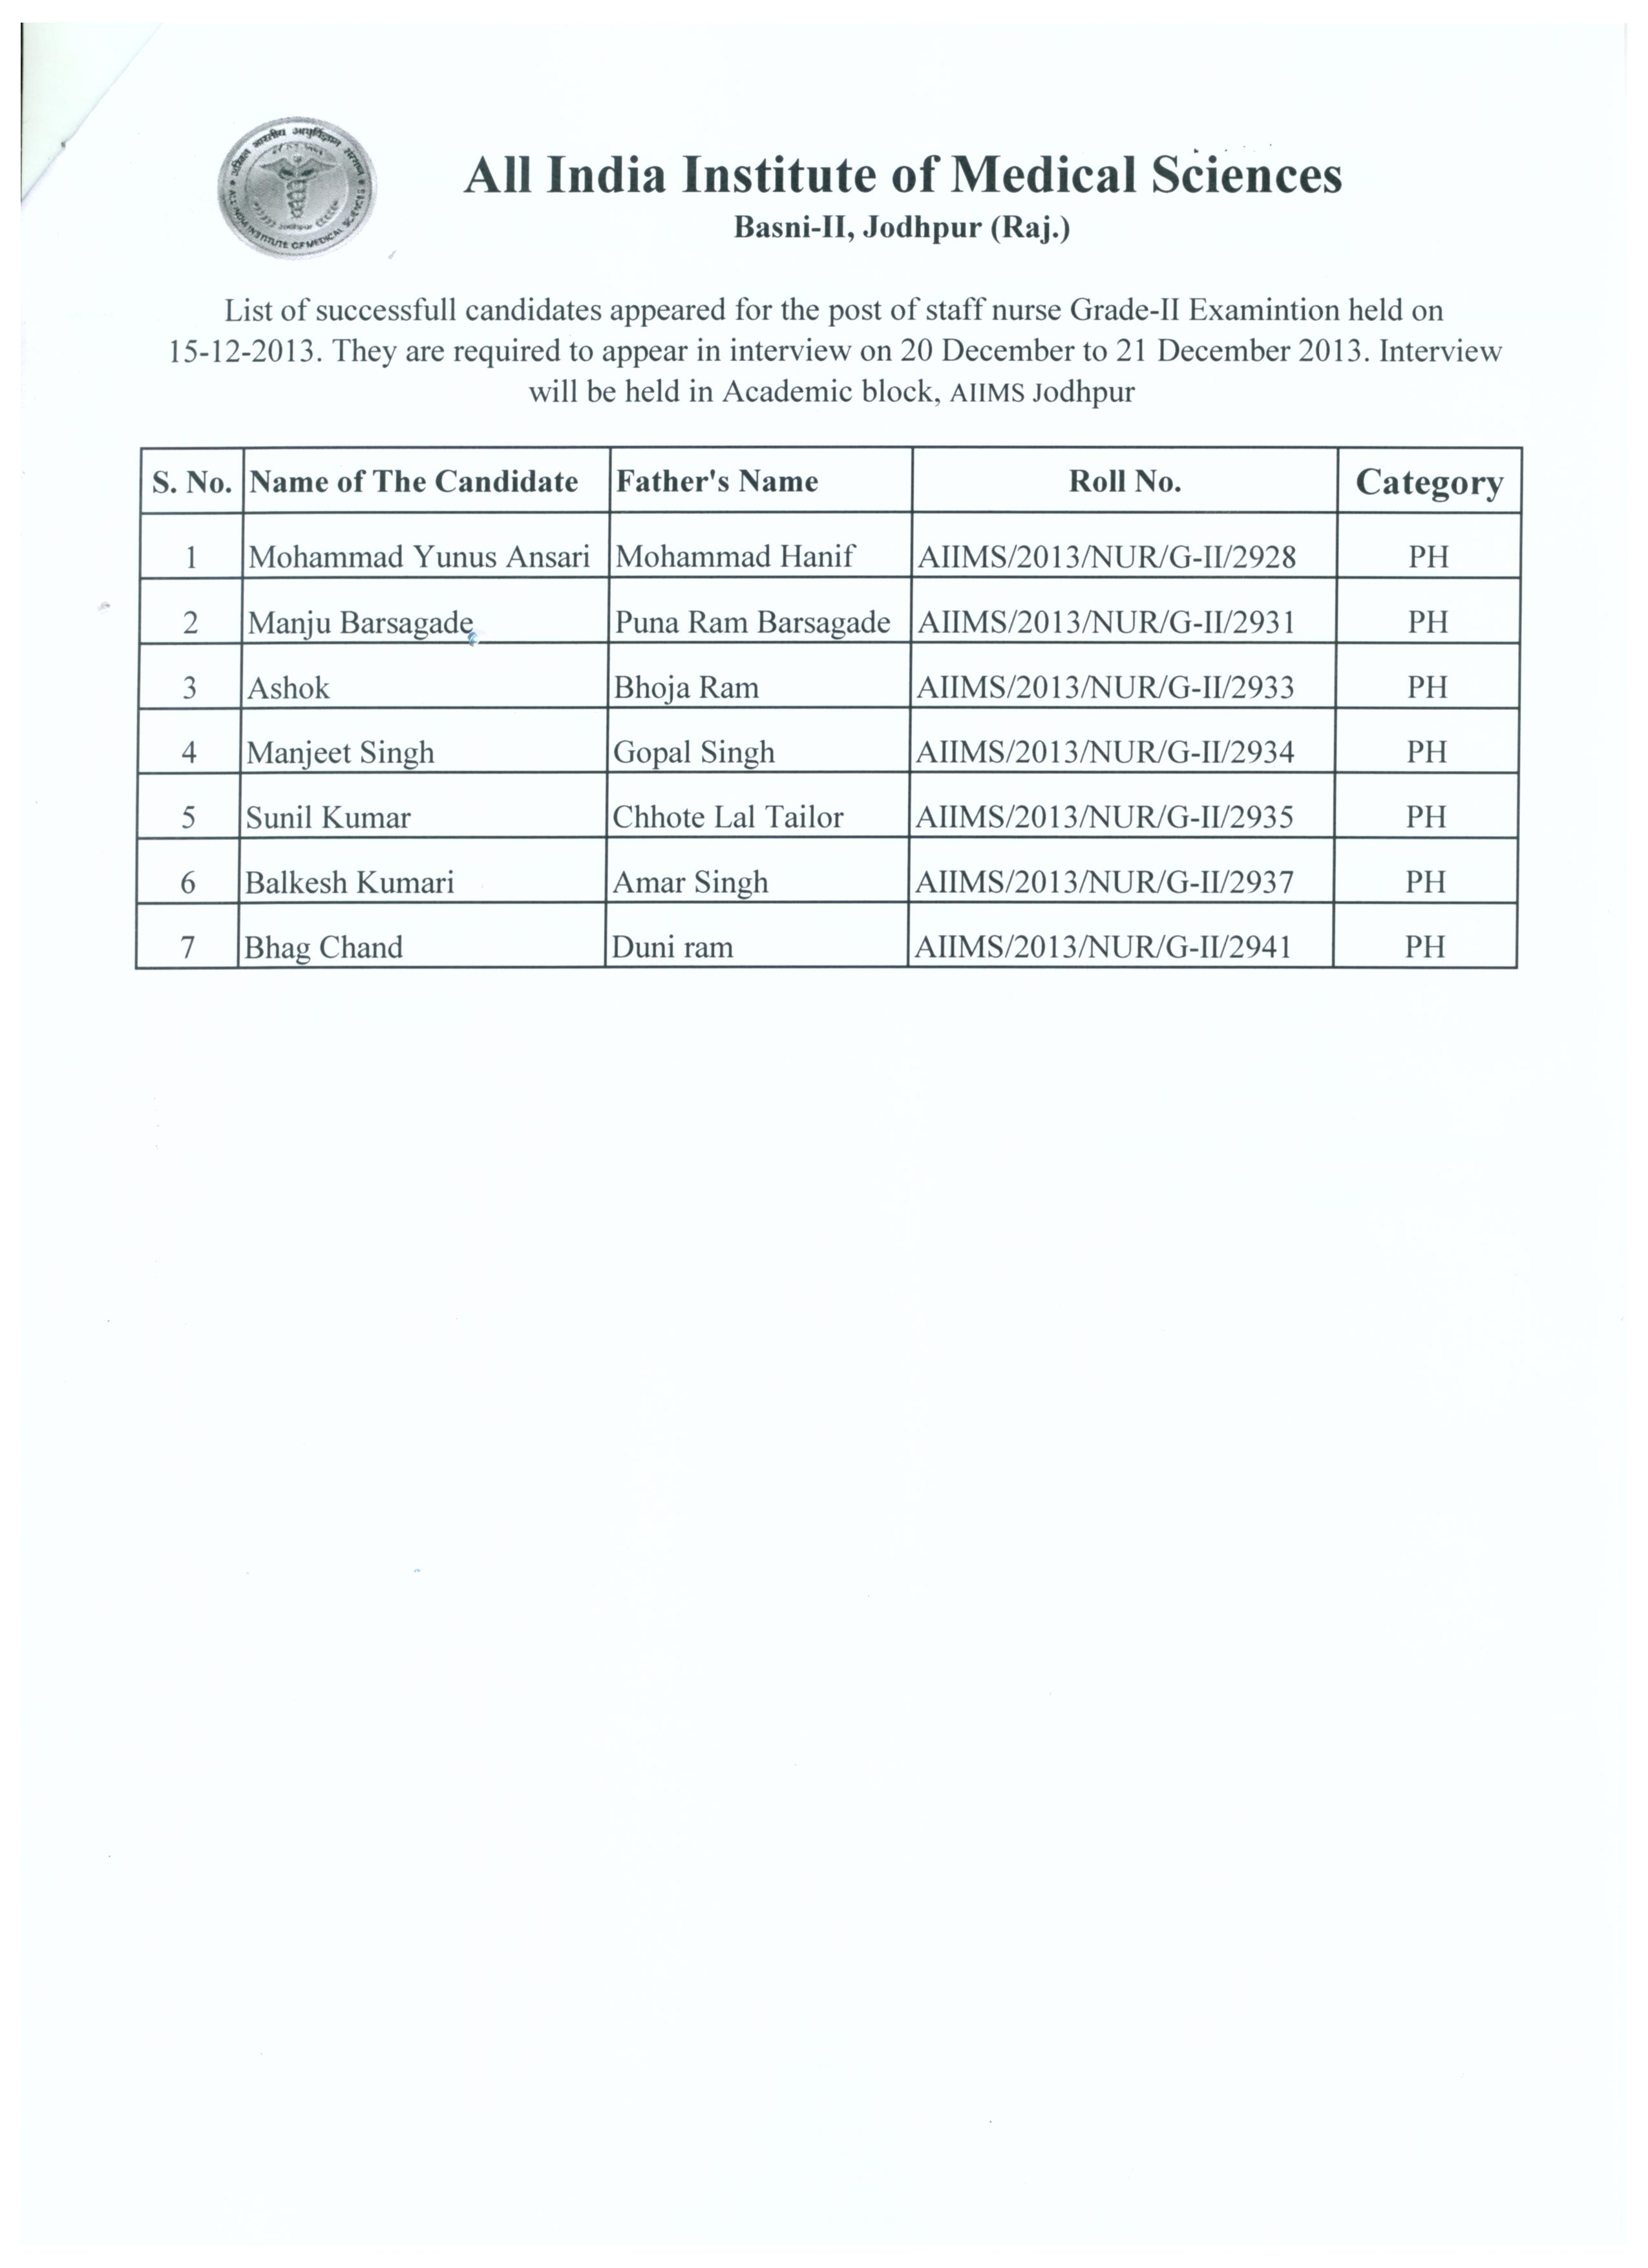 aiims jodhpur result of the successful candadites appeared for the post of staff nurse grade ii examination held on 15 12 2013 category physically handicapped